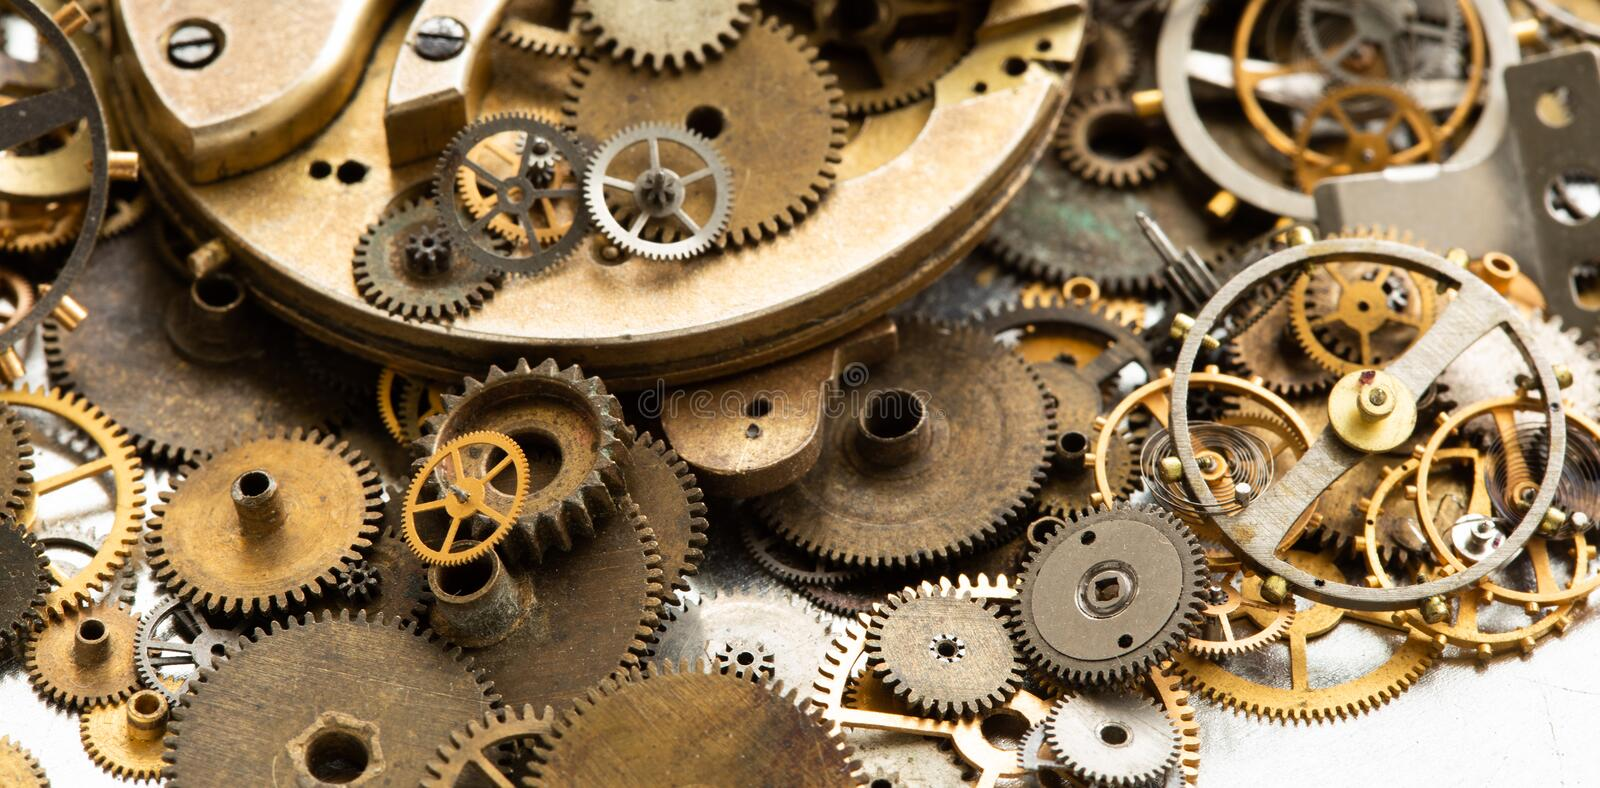 Vintage gears macro view. Aged mechanical clock wheels background. Shallow depth of field, soft focus.  royalty free stock photo